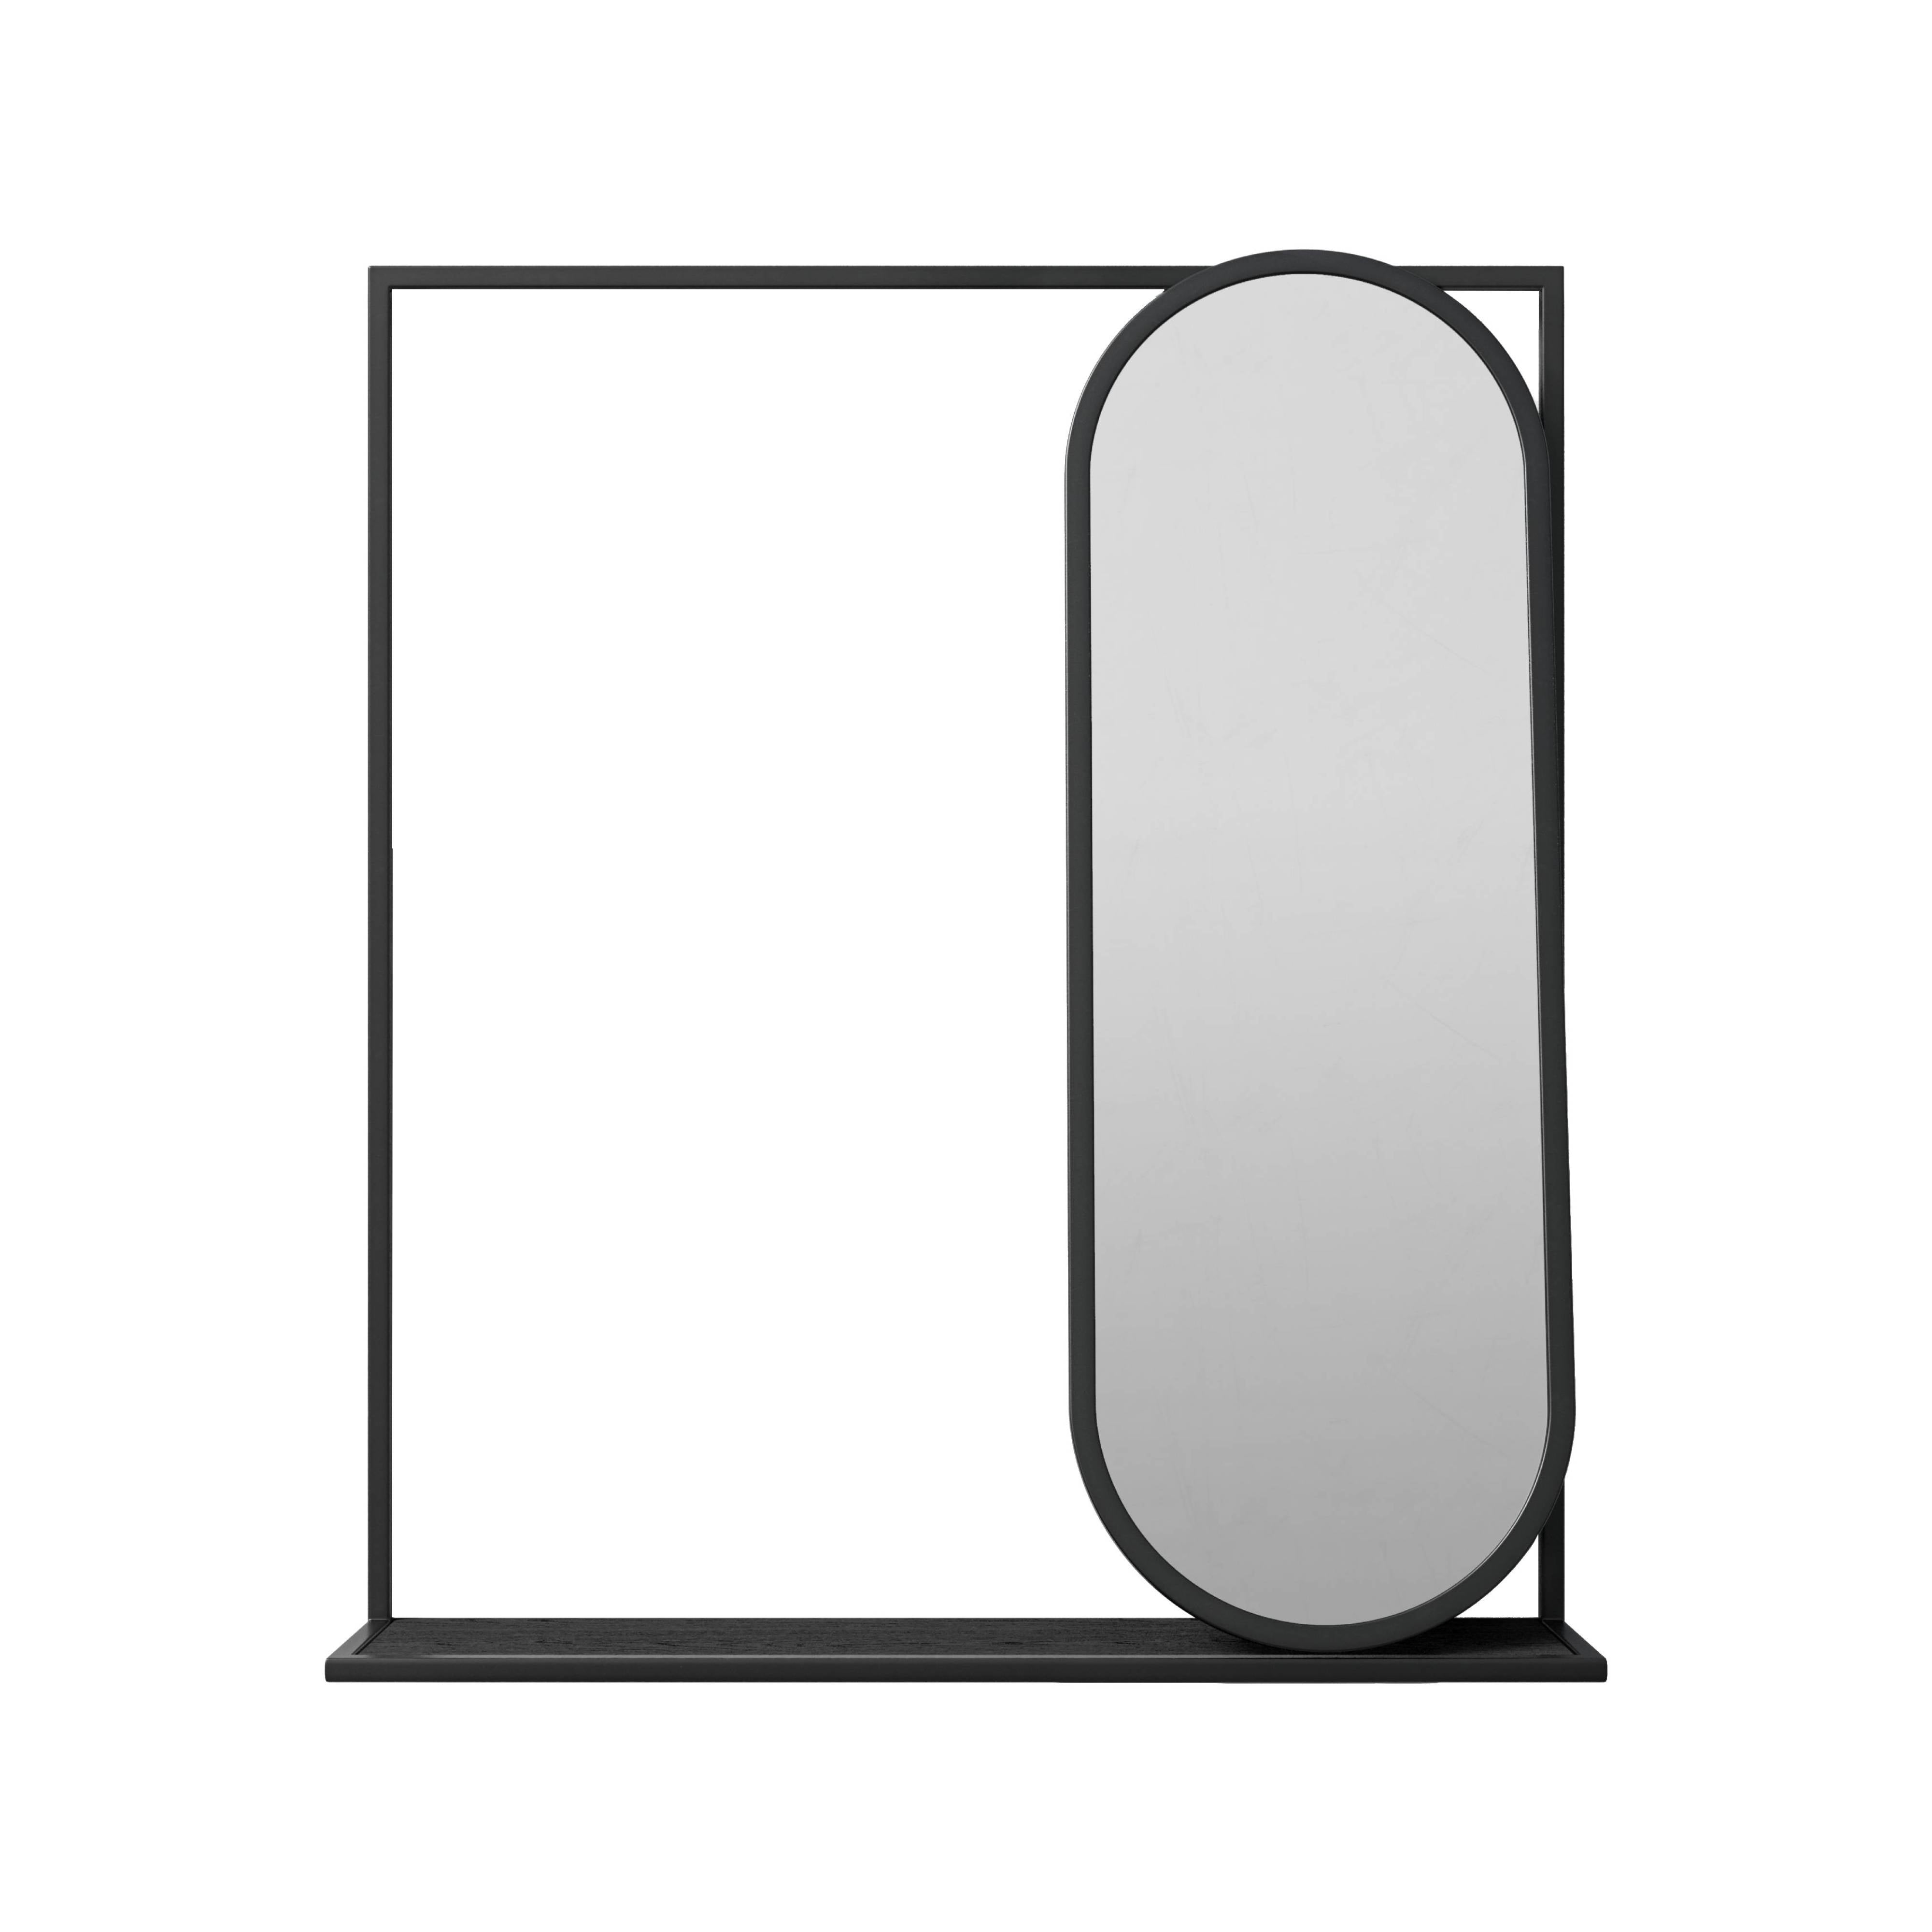 Frame Wall Mirror: Large - 30.1